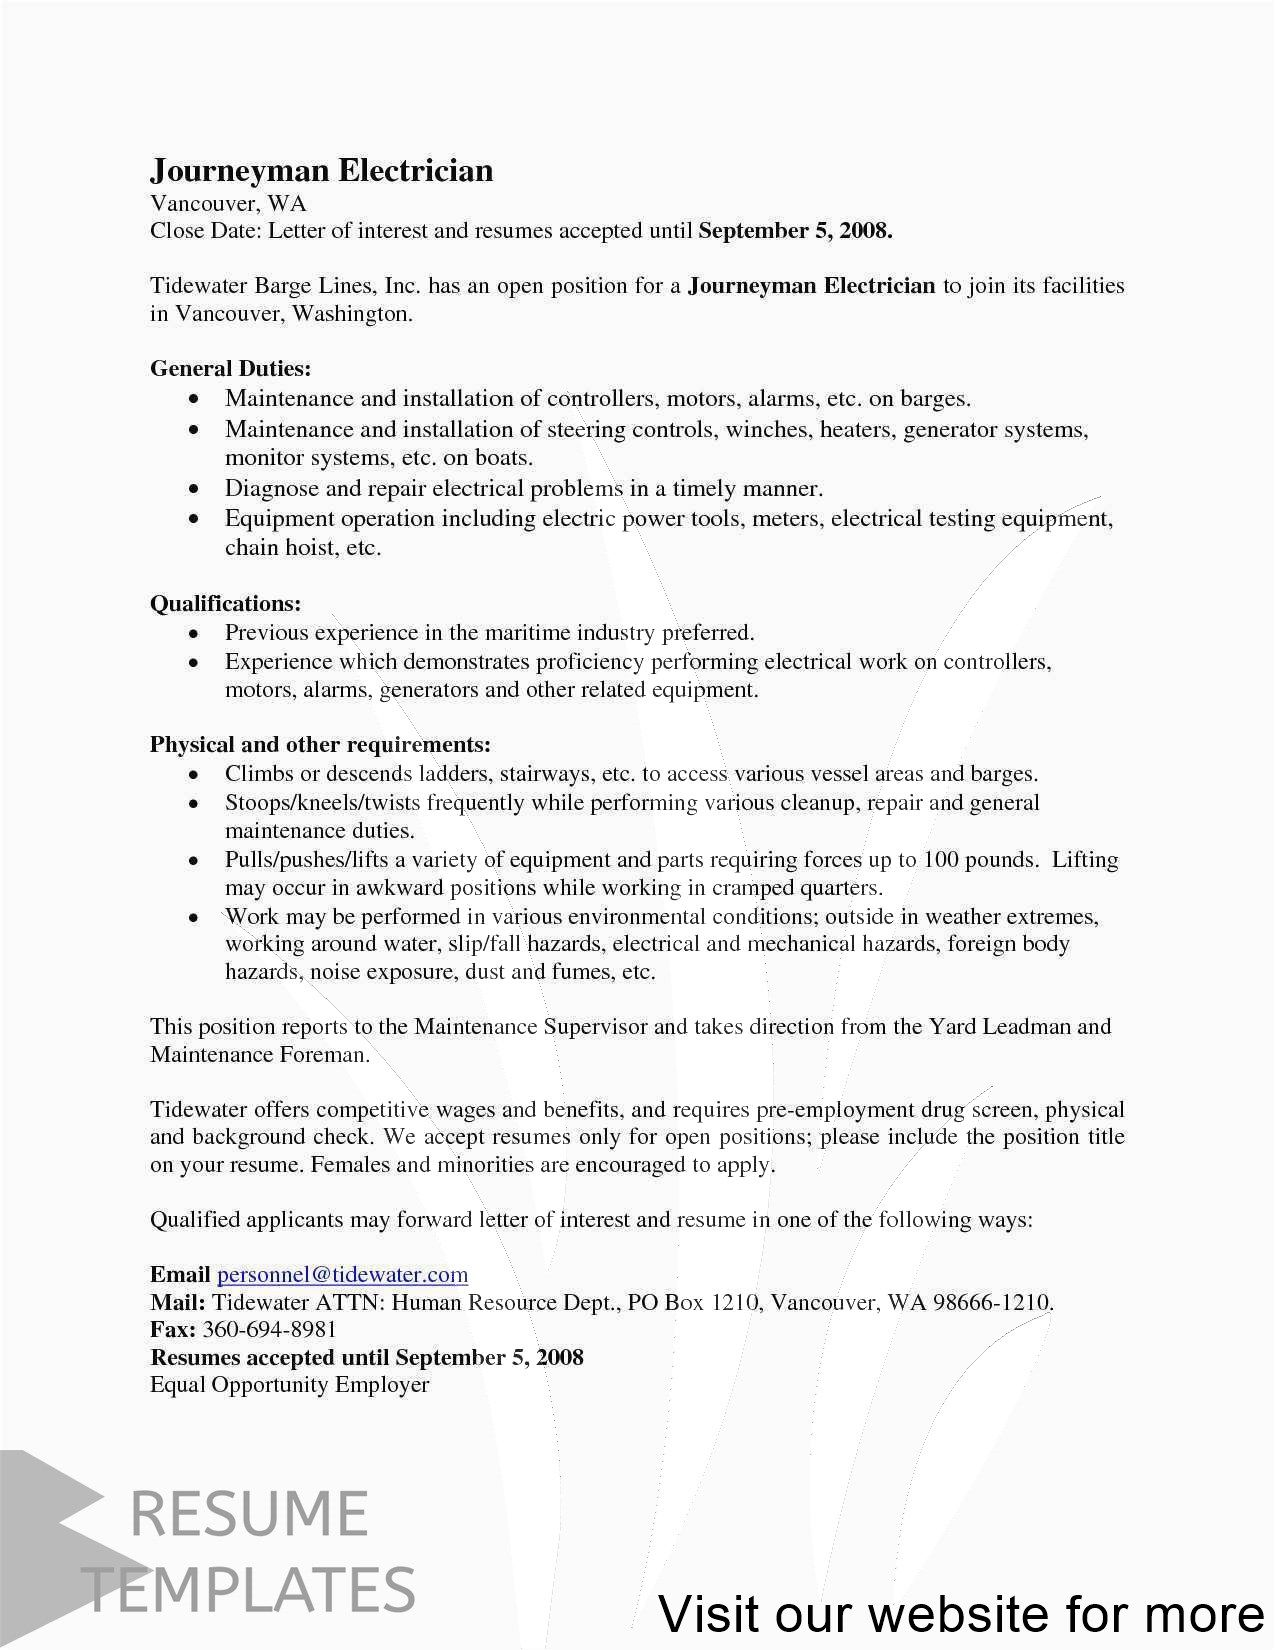 internship cover letter example in 2020 (With images